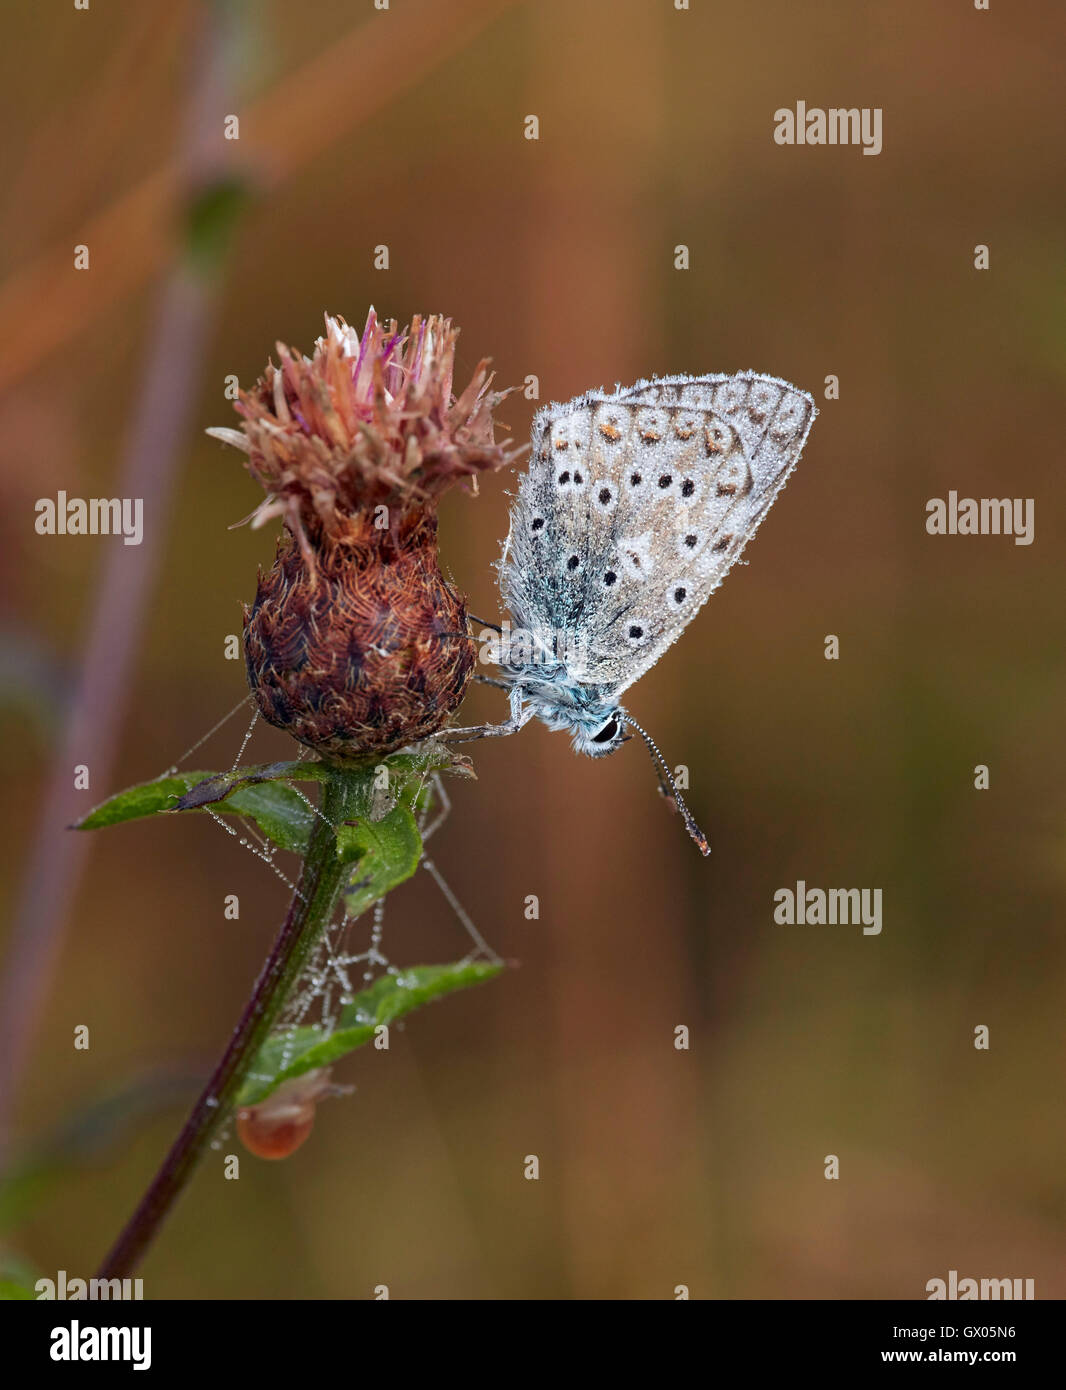 Dew-covered Chalkhill Blue male roosting on knapweed at dawn. Denbies Hillside, Ranmore Common, Surrey, England. Stock Photo